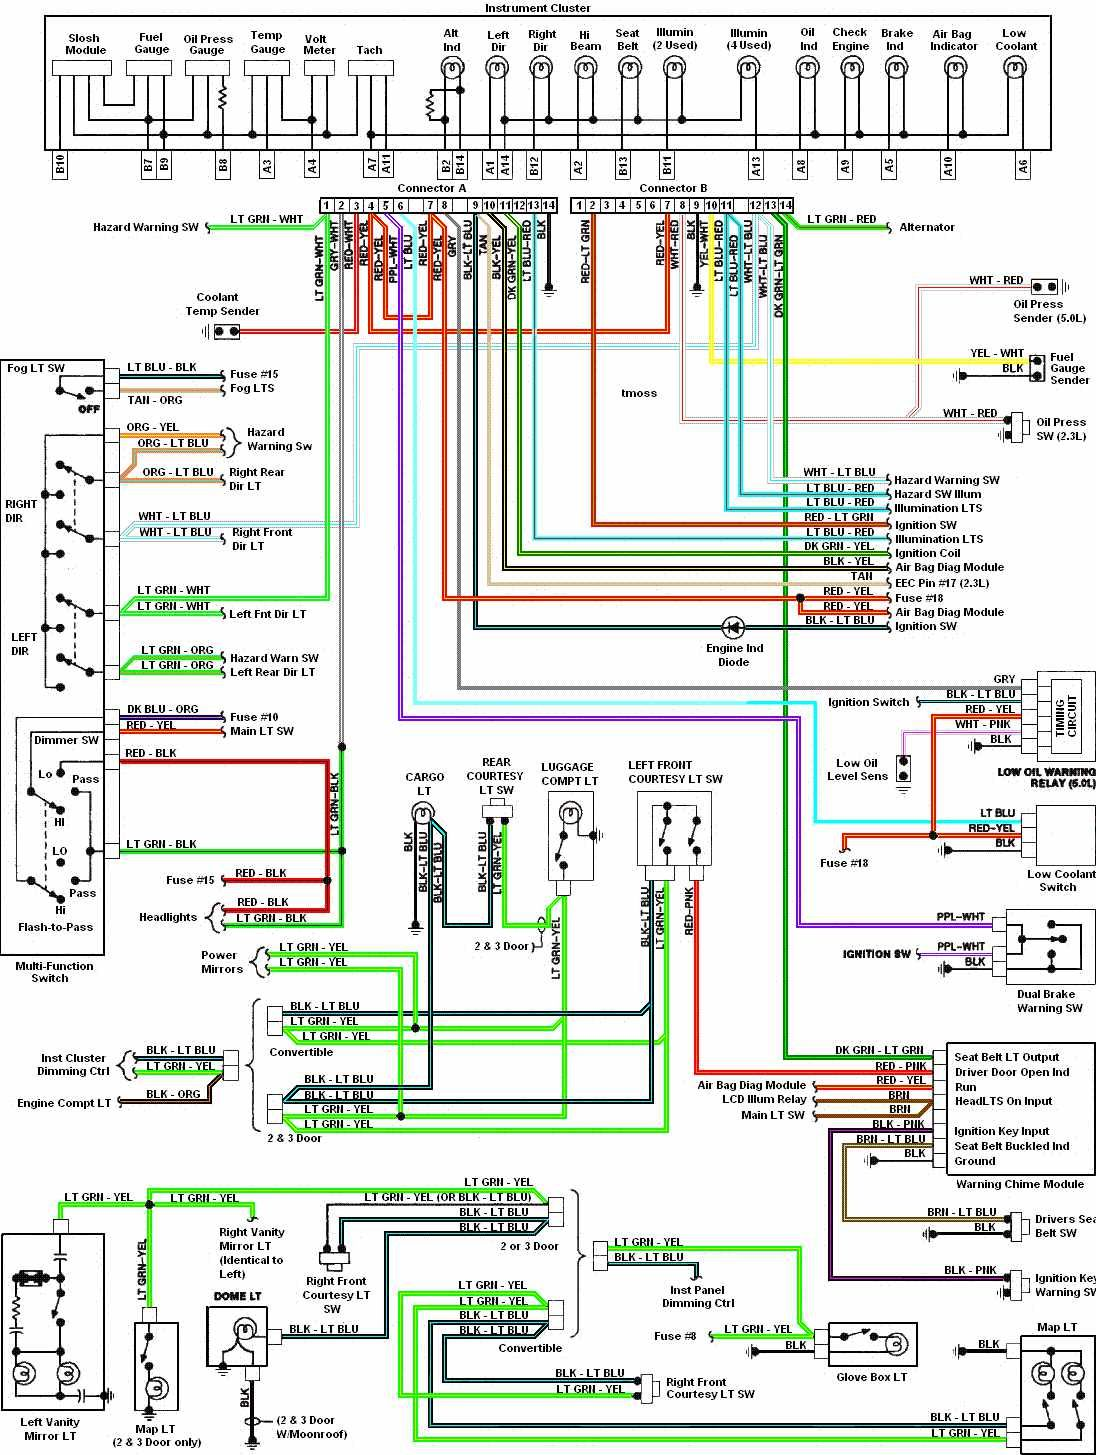 2004 mustang wiring diagram wiring diagram forward 04 mustang gt wiring diagram 04 mustang wiring diagram [ 1096 x 1455 Pixel ]